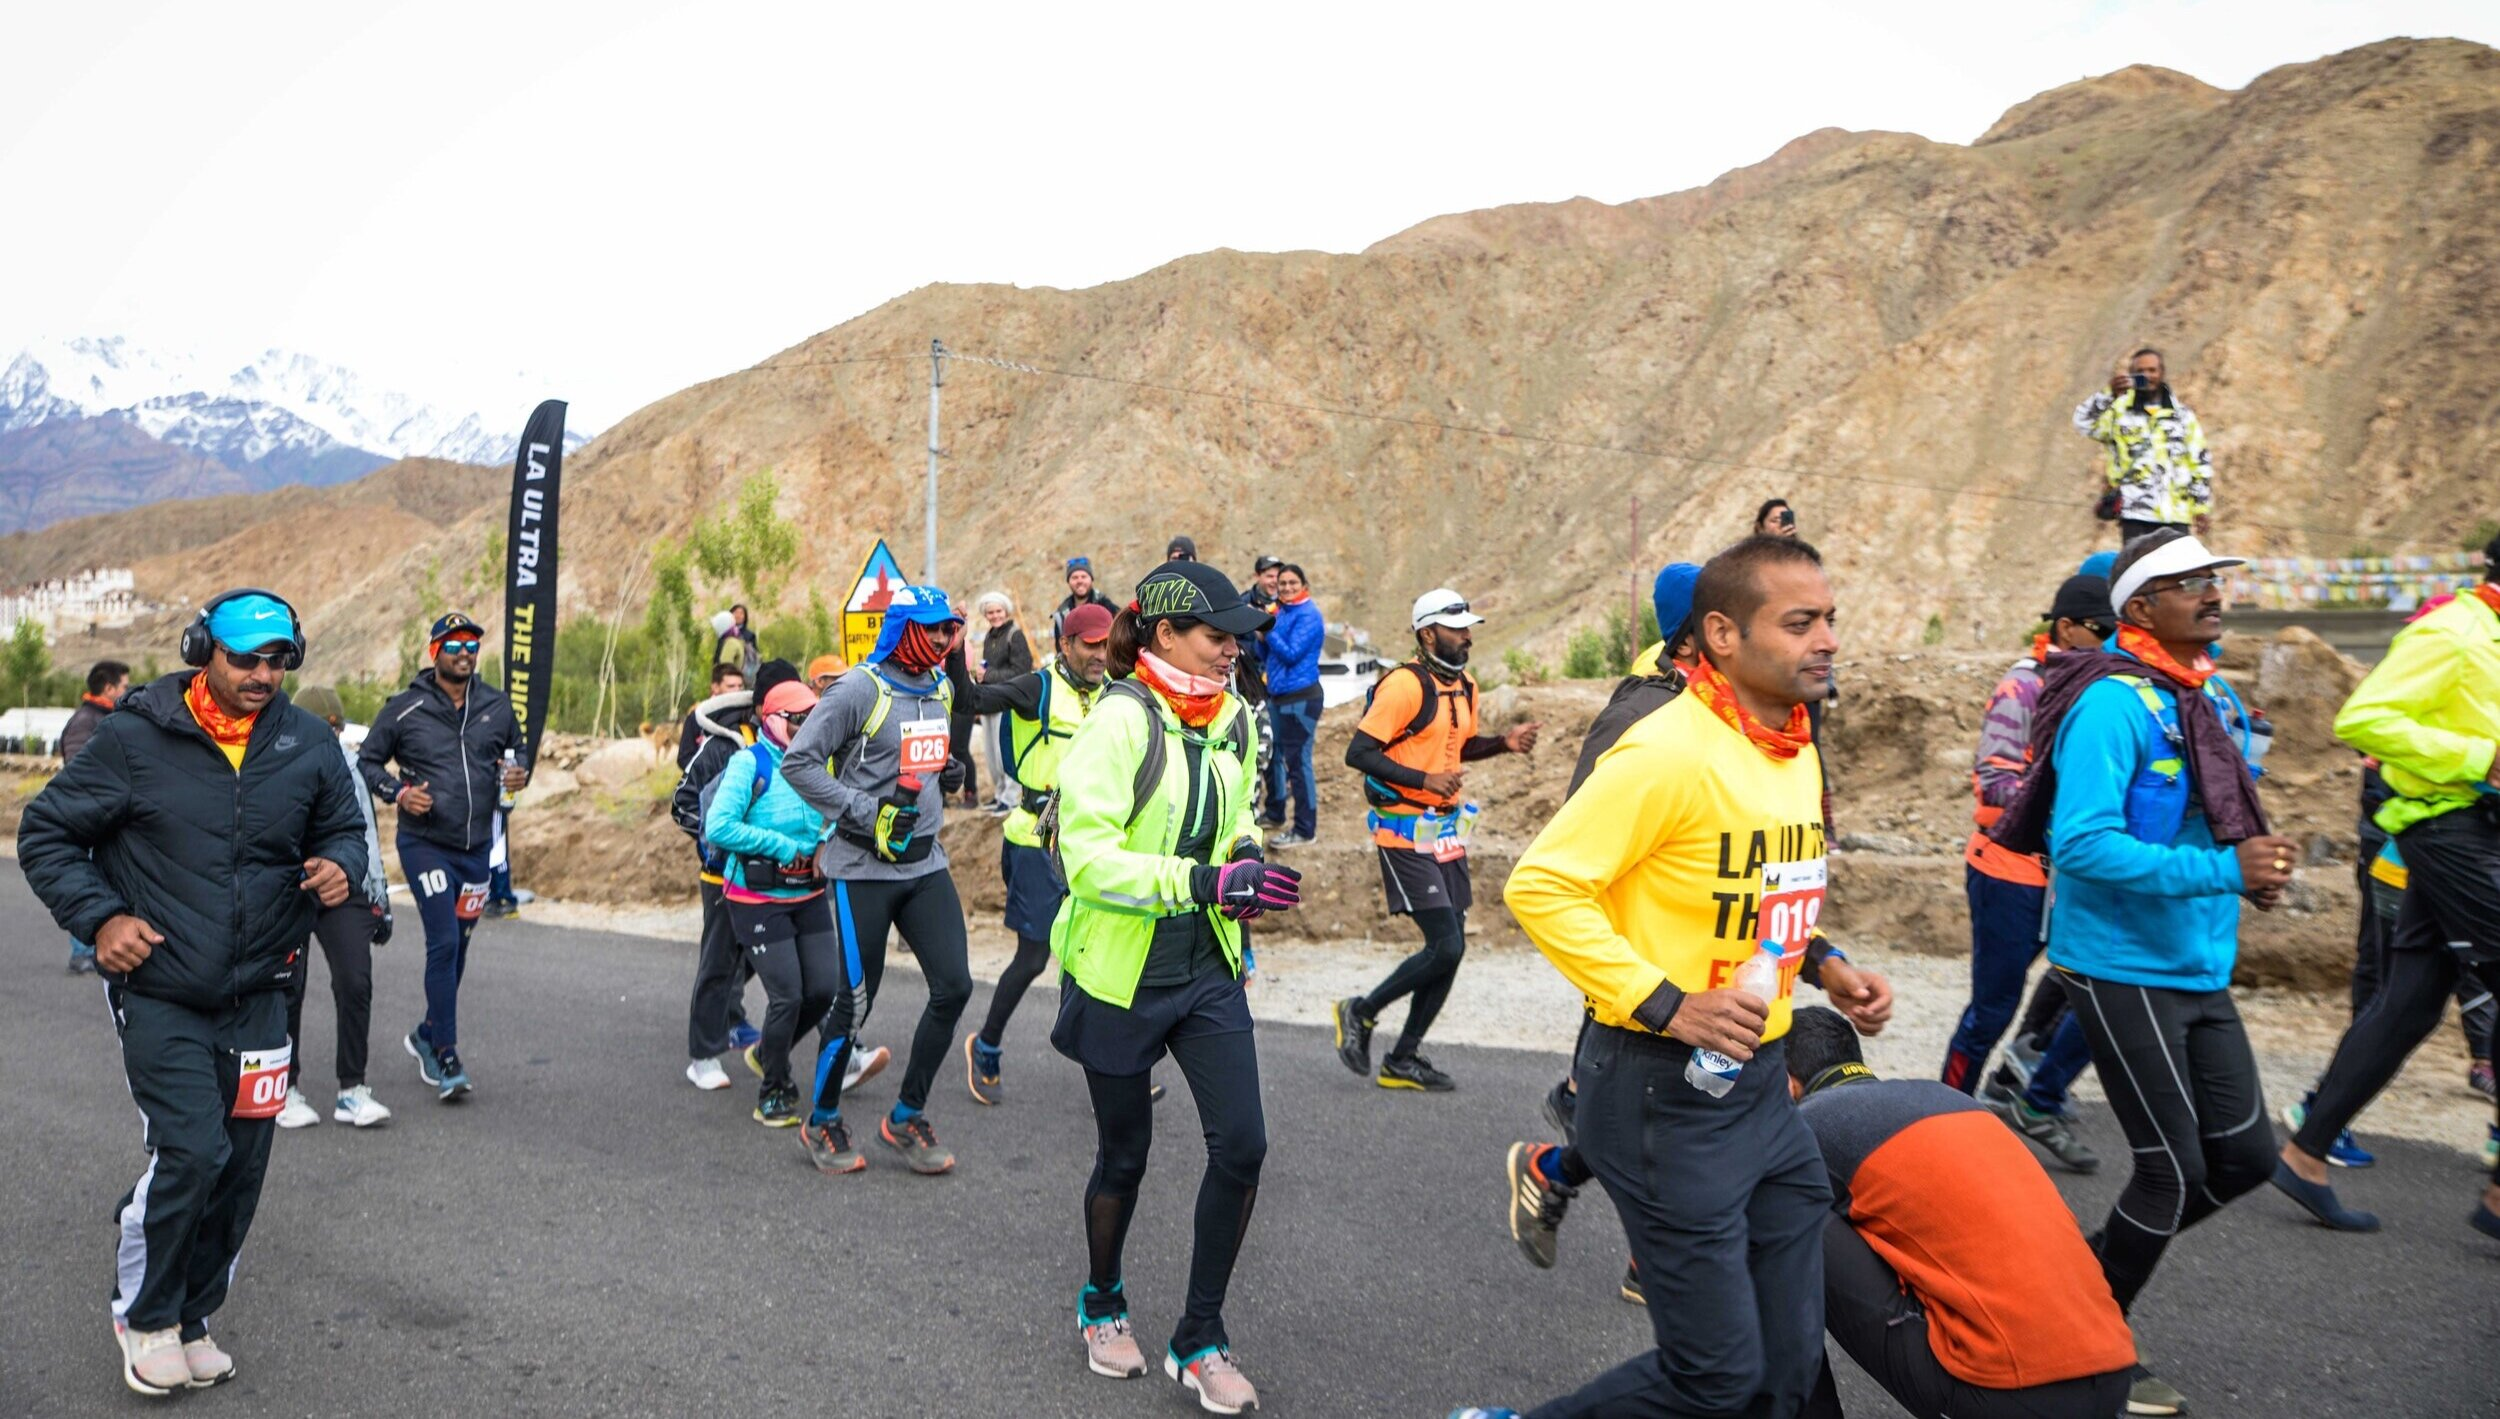 Bib no 026 is Sameer just after the start of 55 kms category.